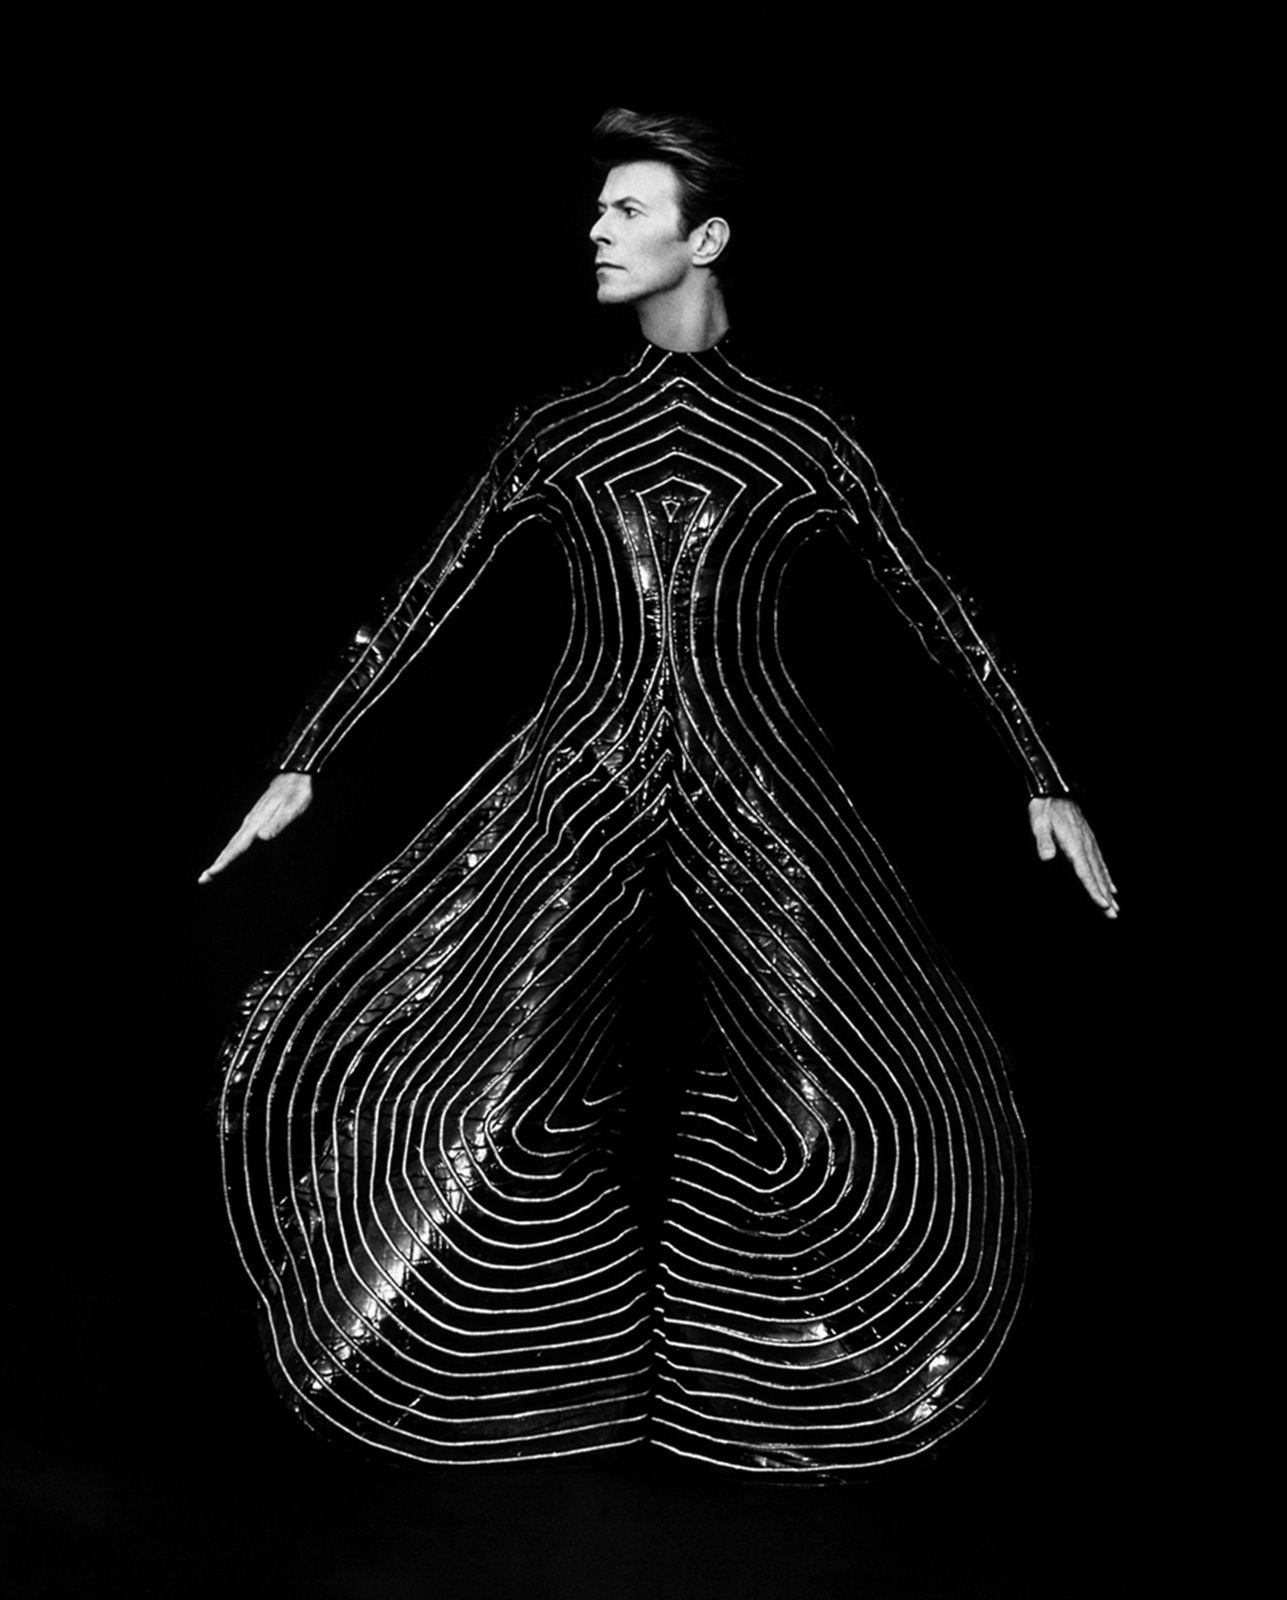 """""""David Bowie"""", 1989 de Herb RITTS  © Herb Ritts Foundation"""